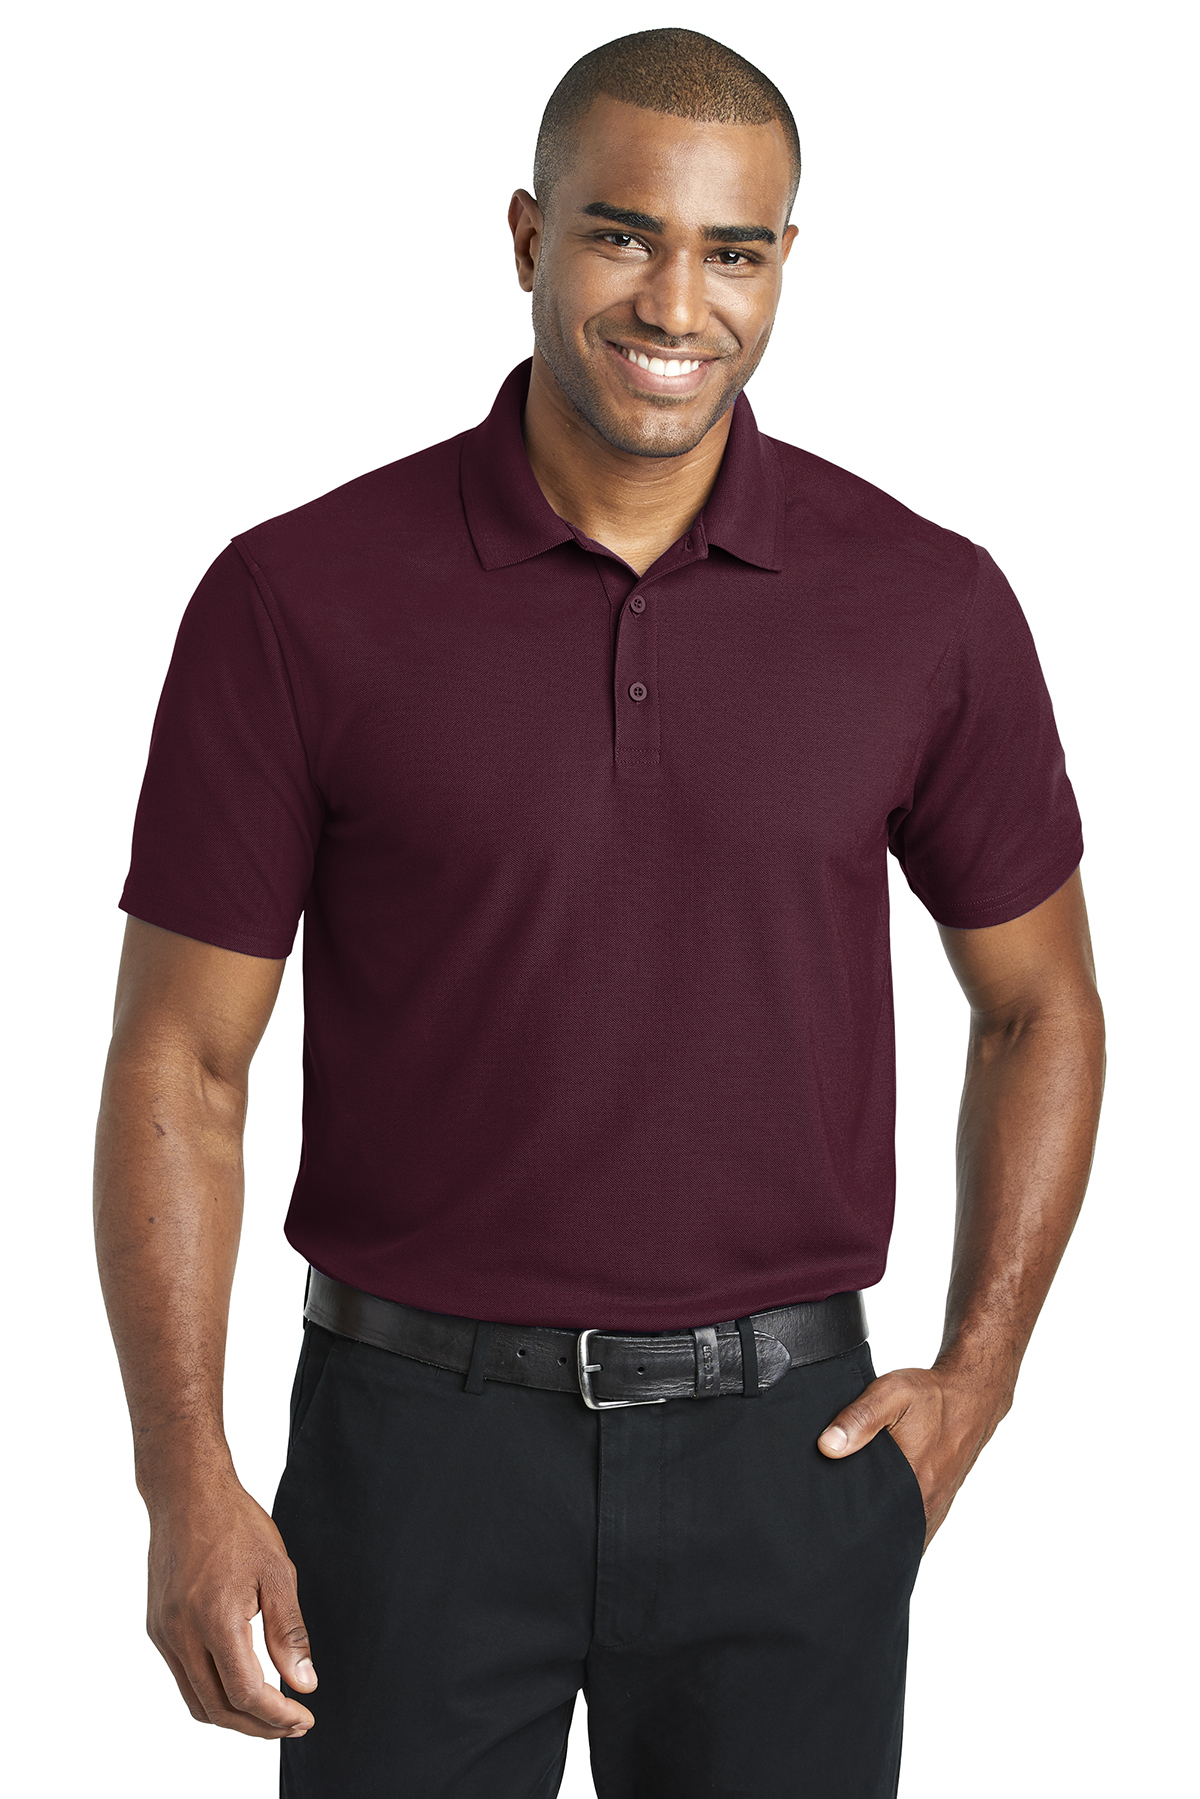 Queensboro Embroidered Men's AP3 All-Purpose Performance Polo